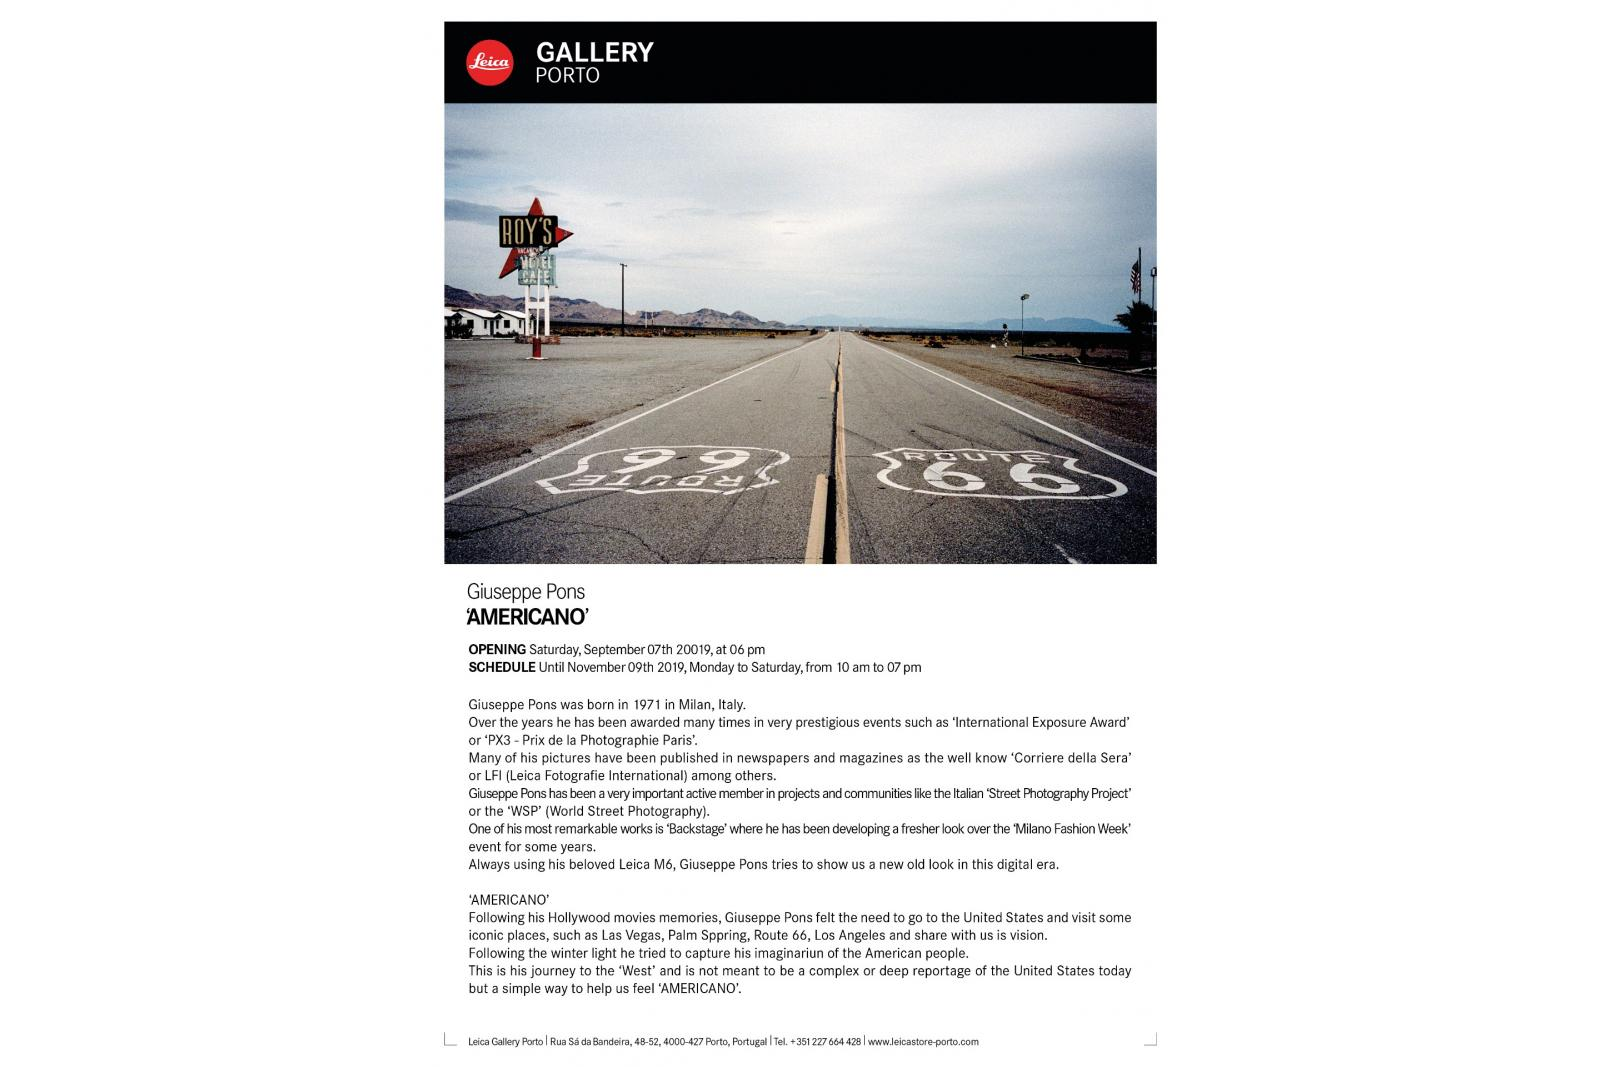 Exhibition at the Leica Gallery from Sept. 7th till Nov. 9th 2019